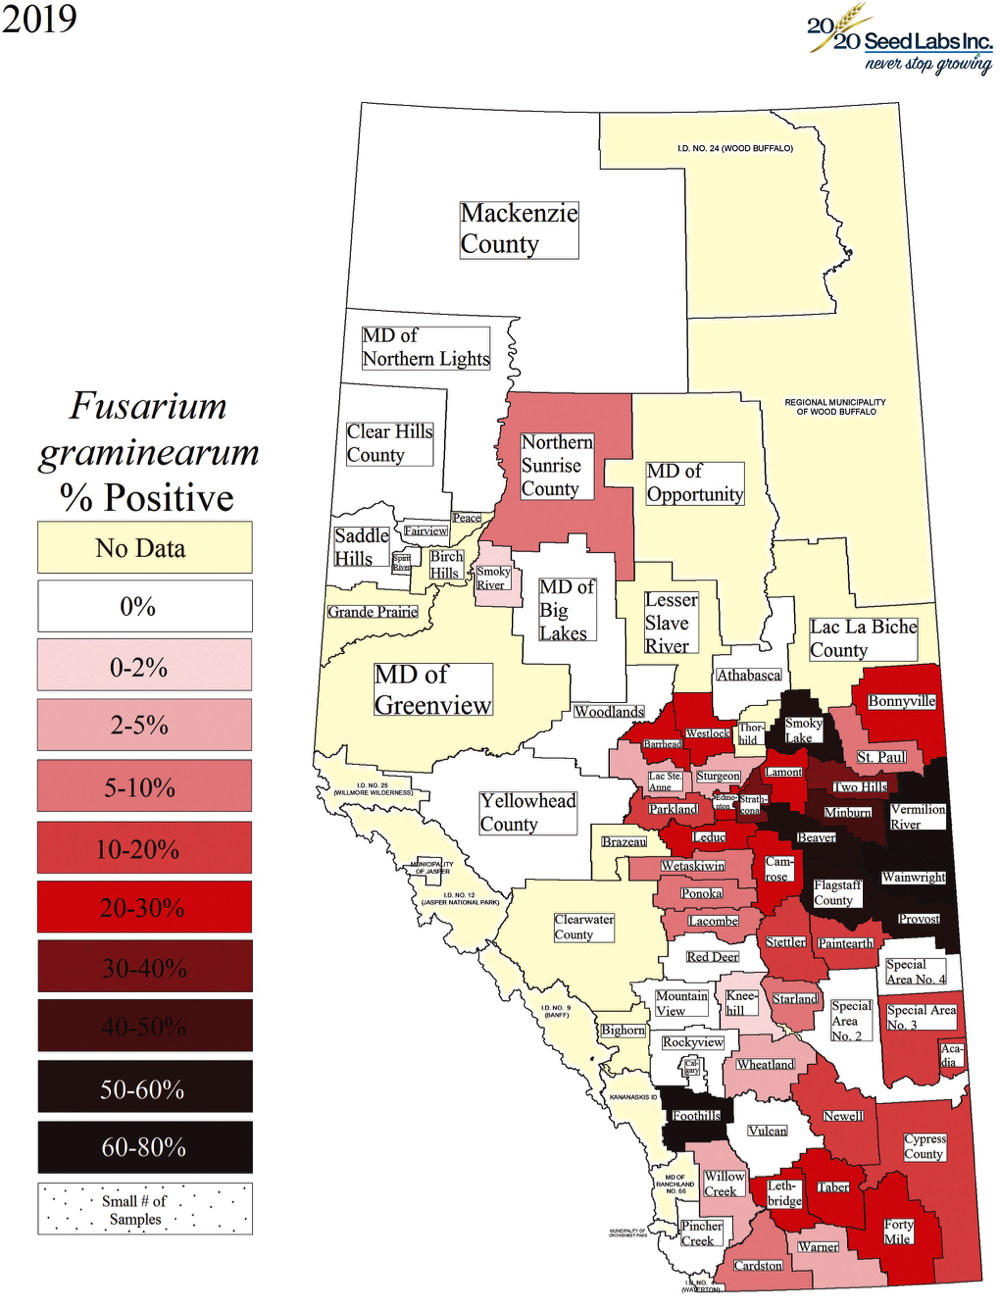 Fusarium head blight is widespread in southern Alberta but is only present in small levels or not at all in the north. The province's decision to remove it from the pest act has sparked a protest, including a call on the home page of the MD of Peace urging farmers to ask for a refund of the checkoff paid to Alberta Wheat and Alberta Barley.